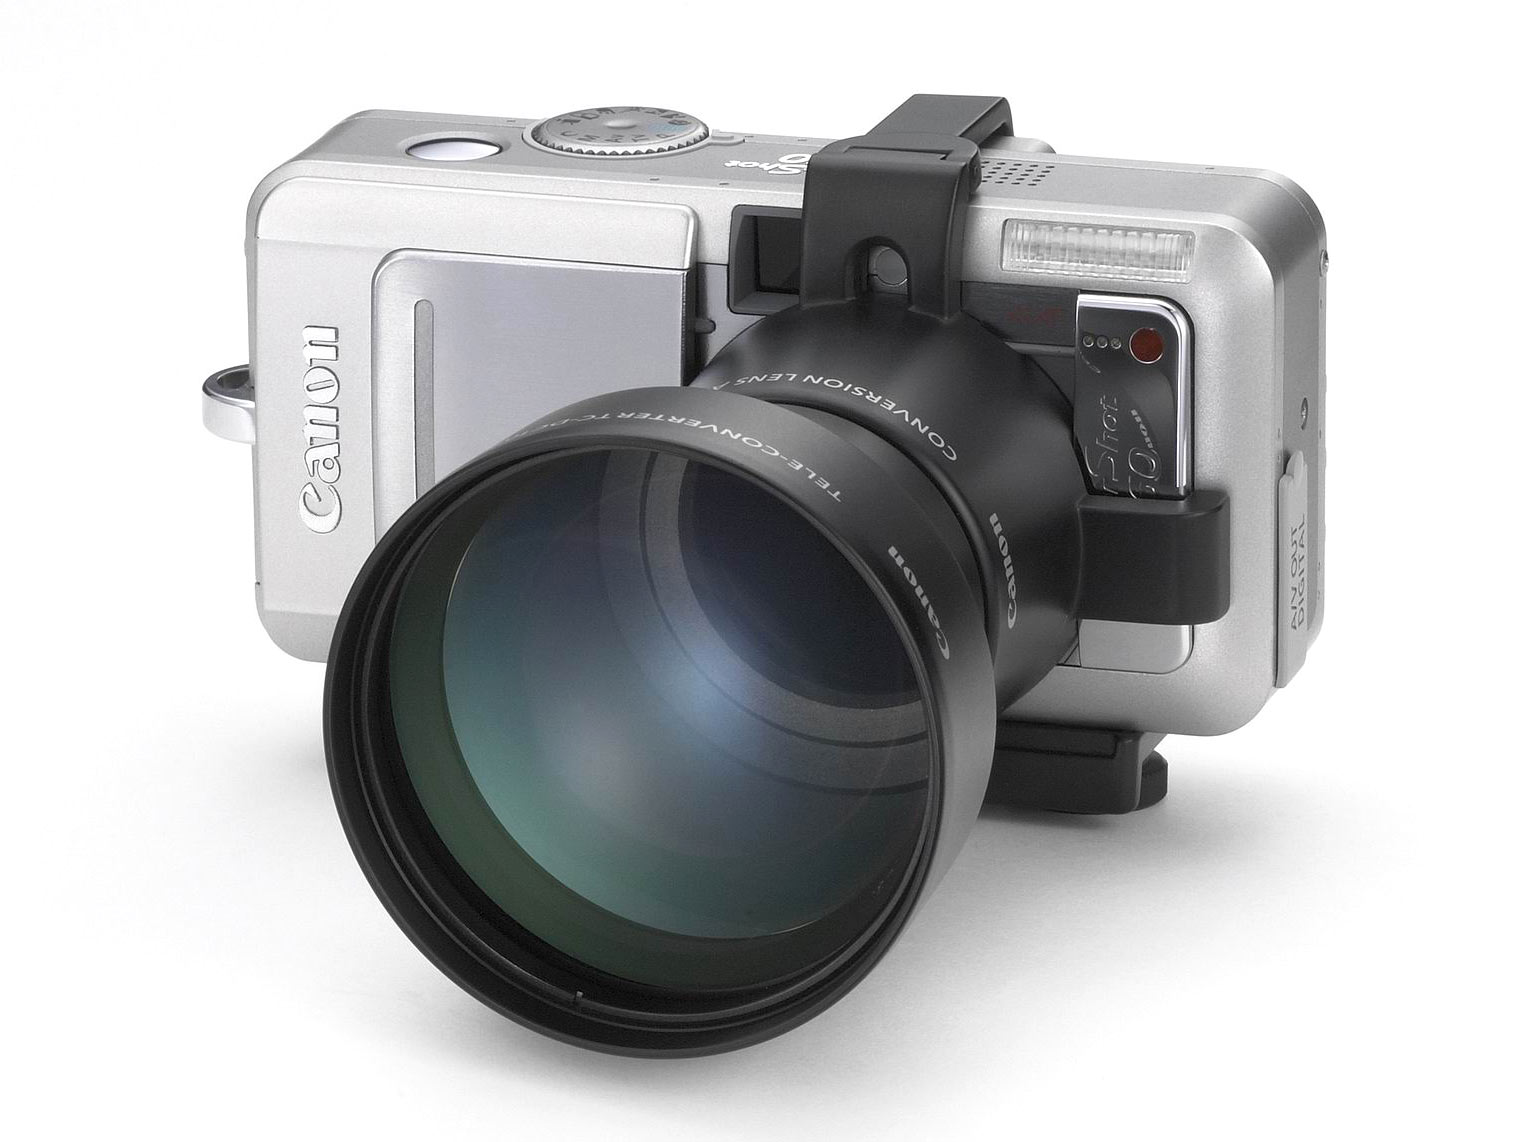 Canon Powershot S60 Digital Photography Review